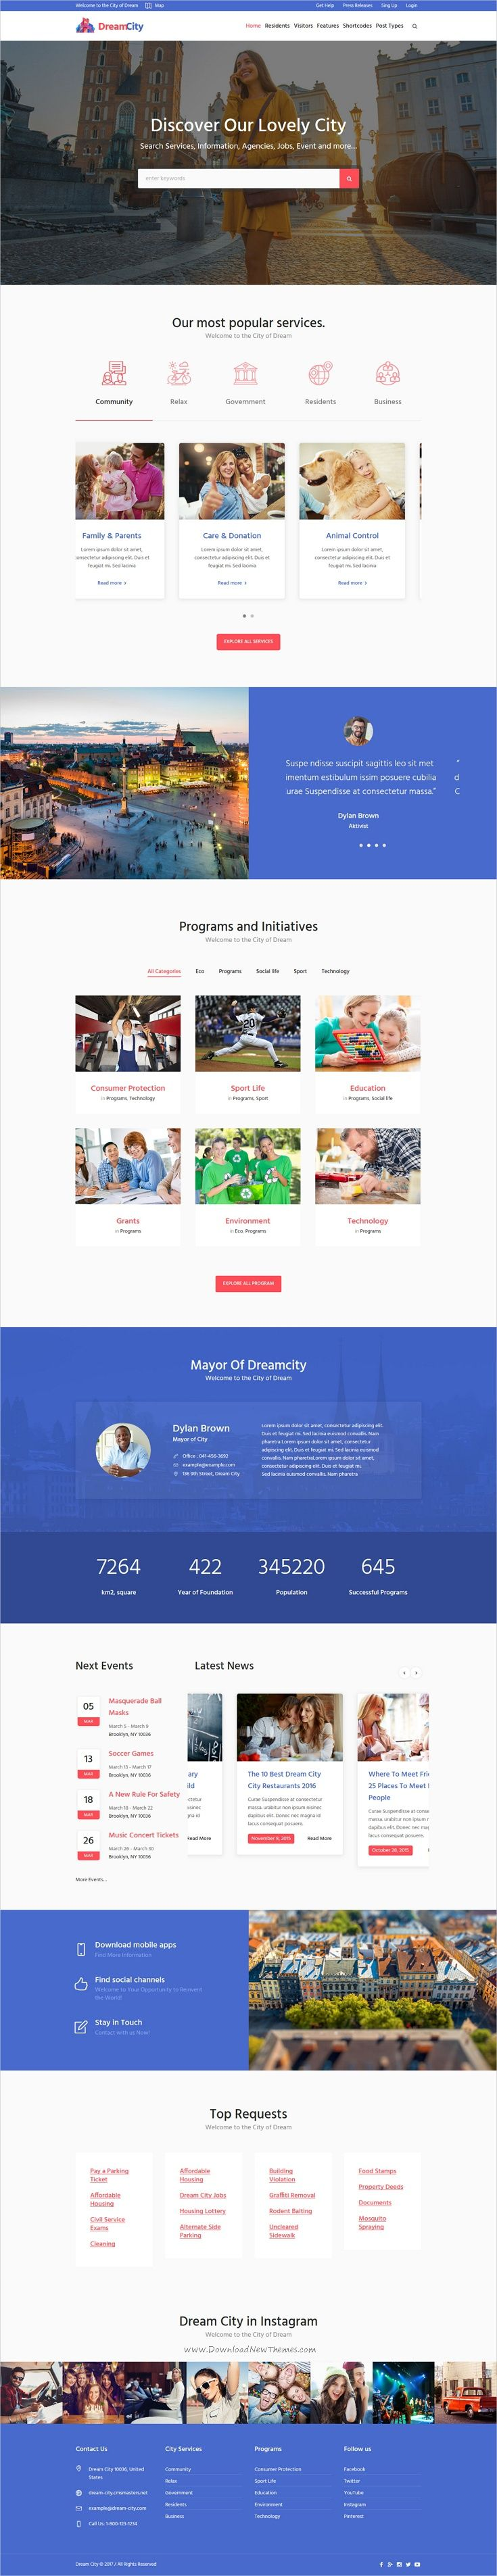 Dream city is a wonderful responsive #WordPress theme for #government #municipal and city portal websites download now➩ https://themeforest.net/item/dream-city-city-portal-government-municipal-wordpress-theme/19398021?ref=Datasata